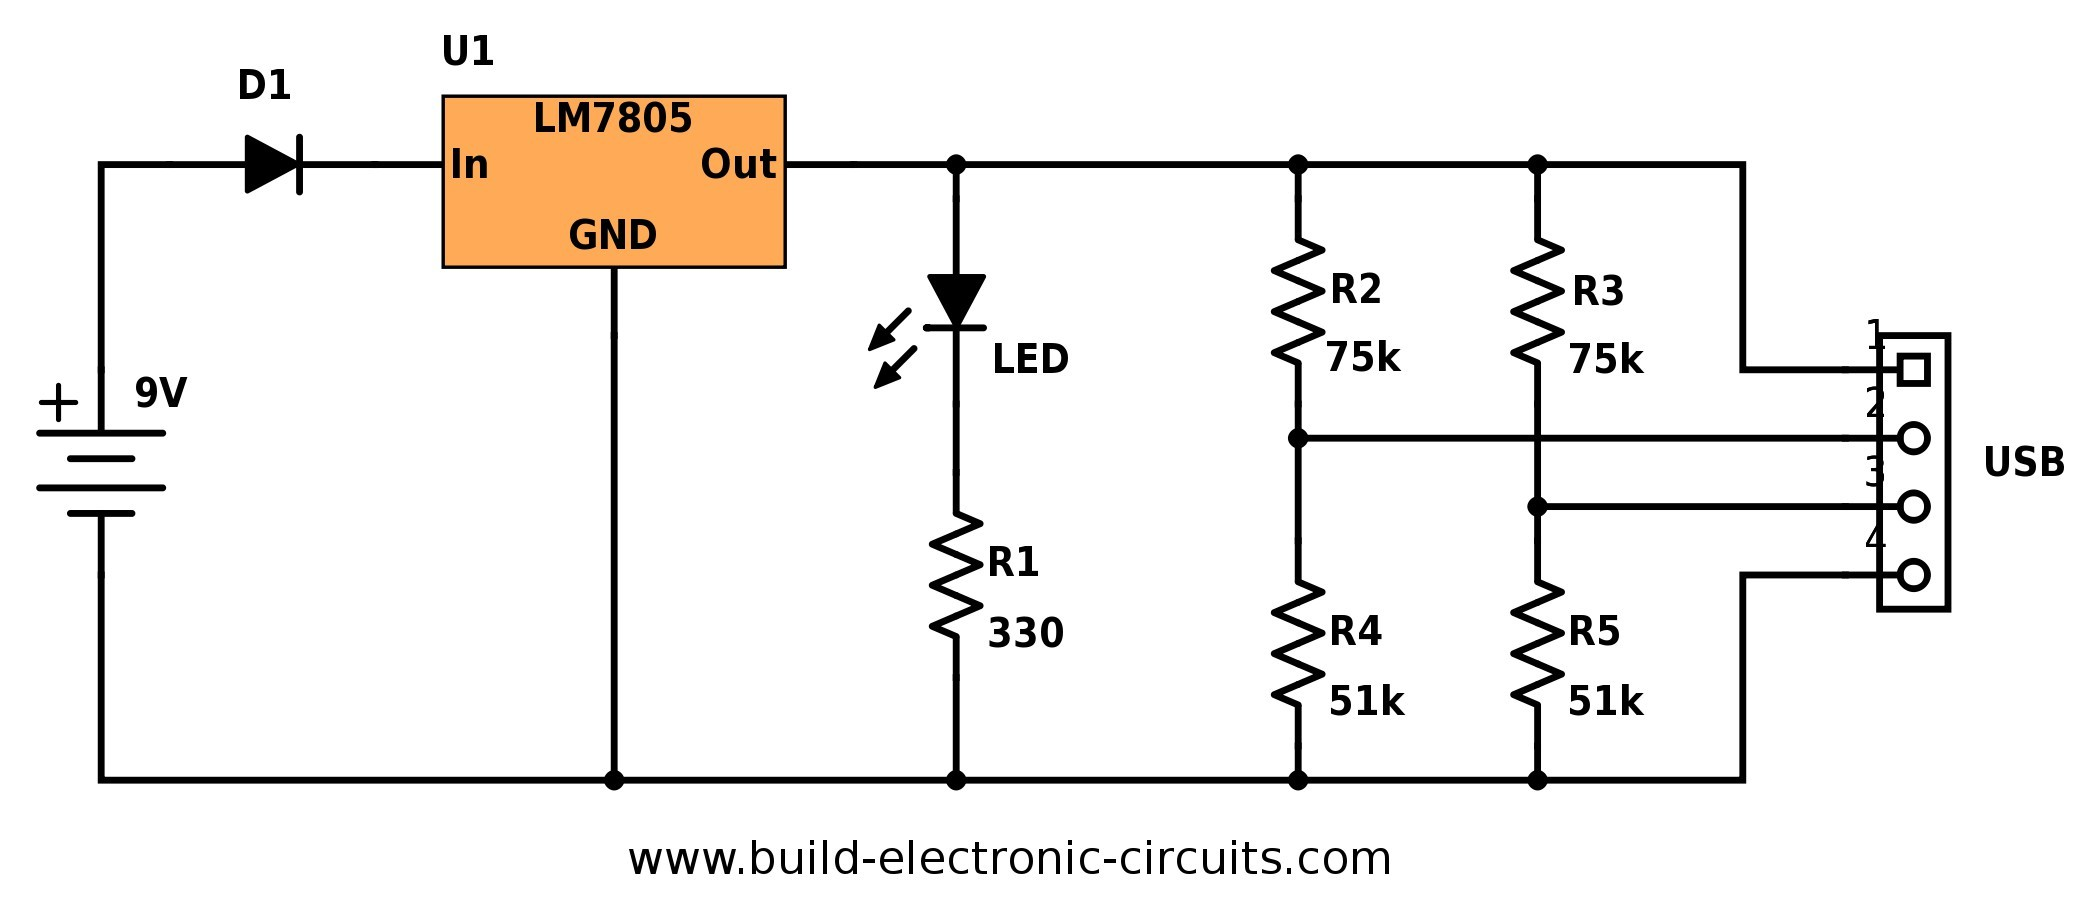 Car charger circuit diagram cell phone charger circuit diagram fresh car charger circuit diagram cell phone charger circuit diagram fresh diagram a parallel circuit of car ccuart